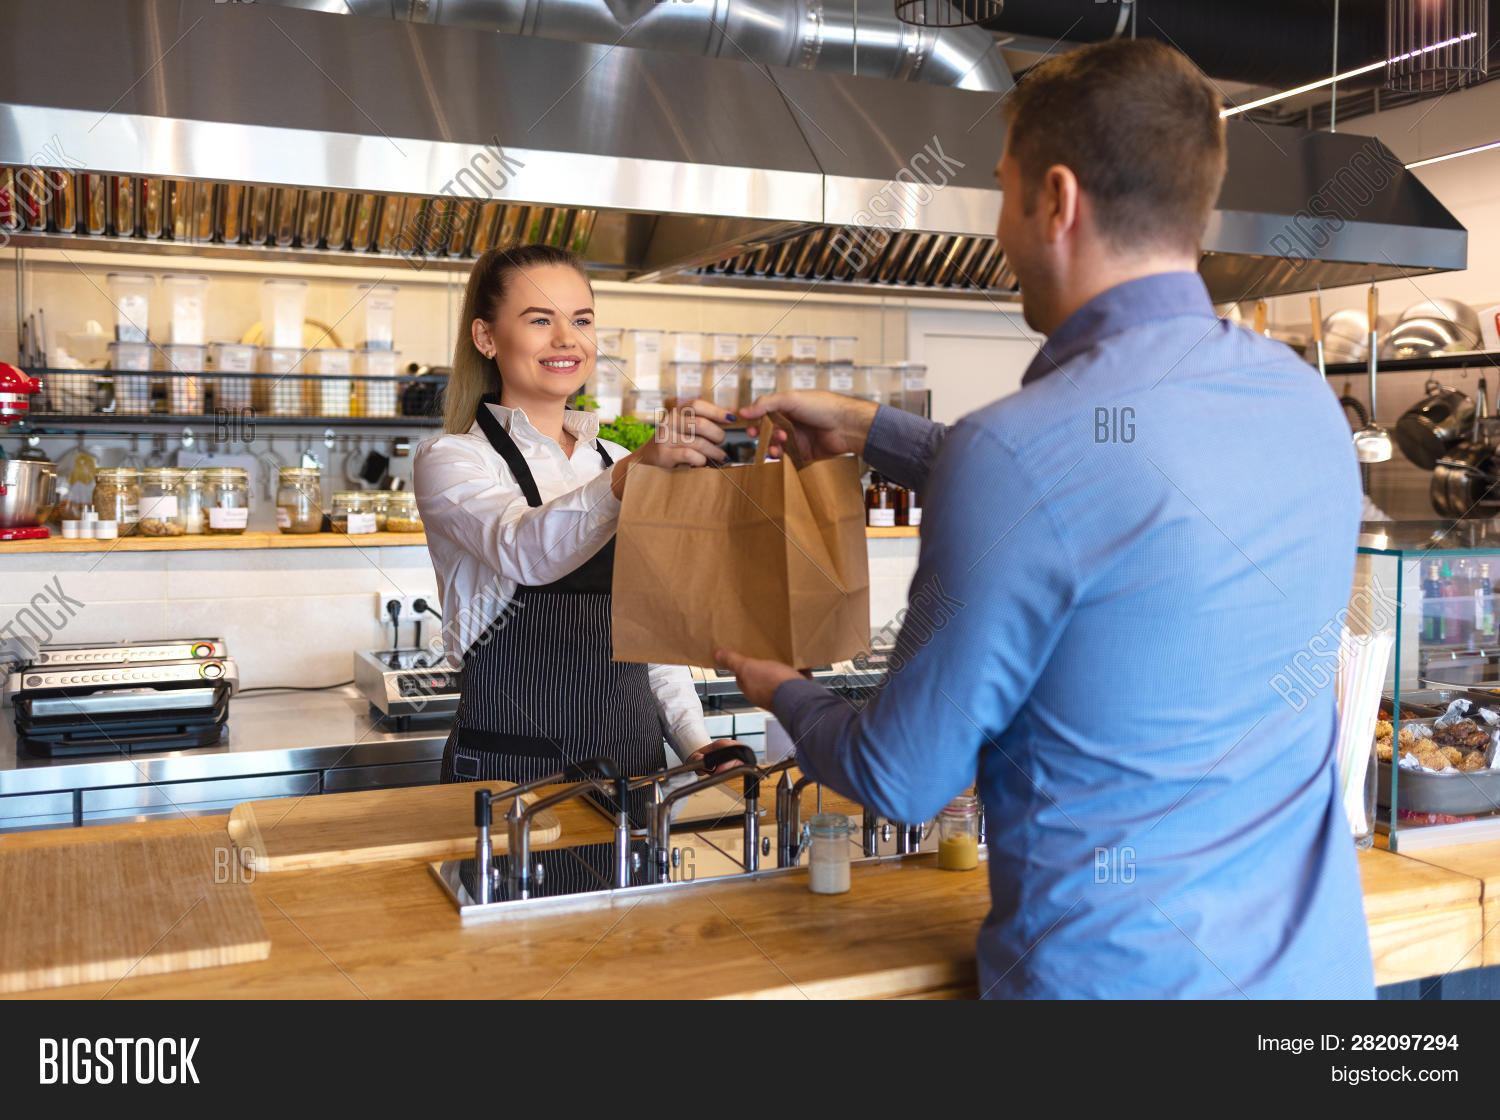 Smiling Young Waiter Giving Food Order To Man Client At Small Fast Food. Happy Woman Standing Behind